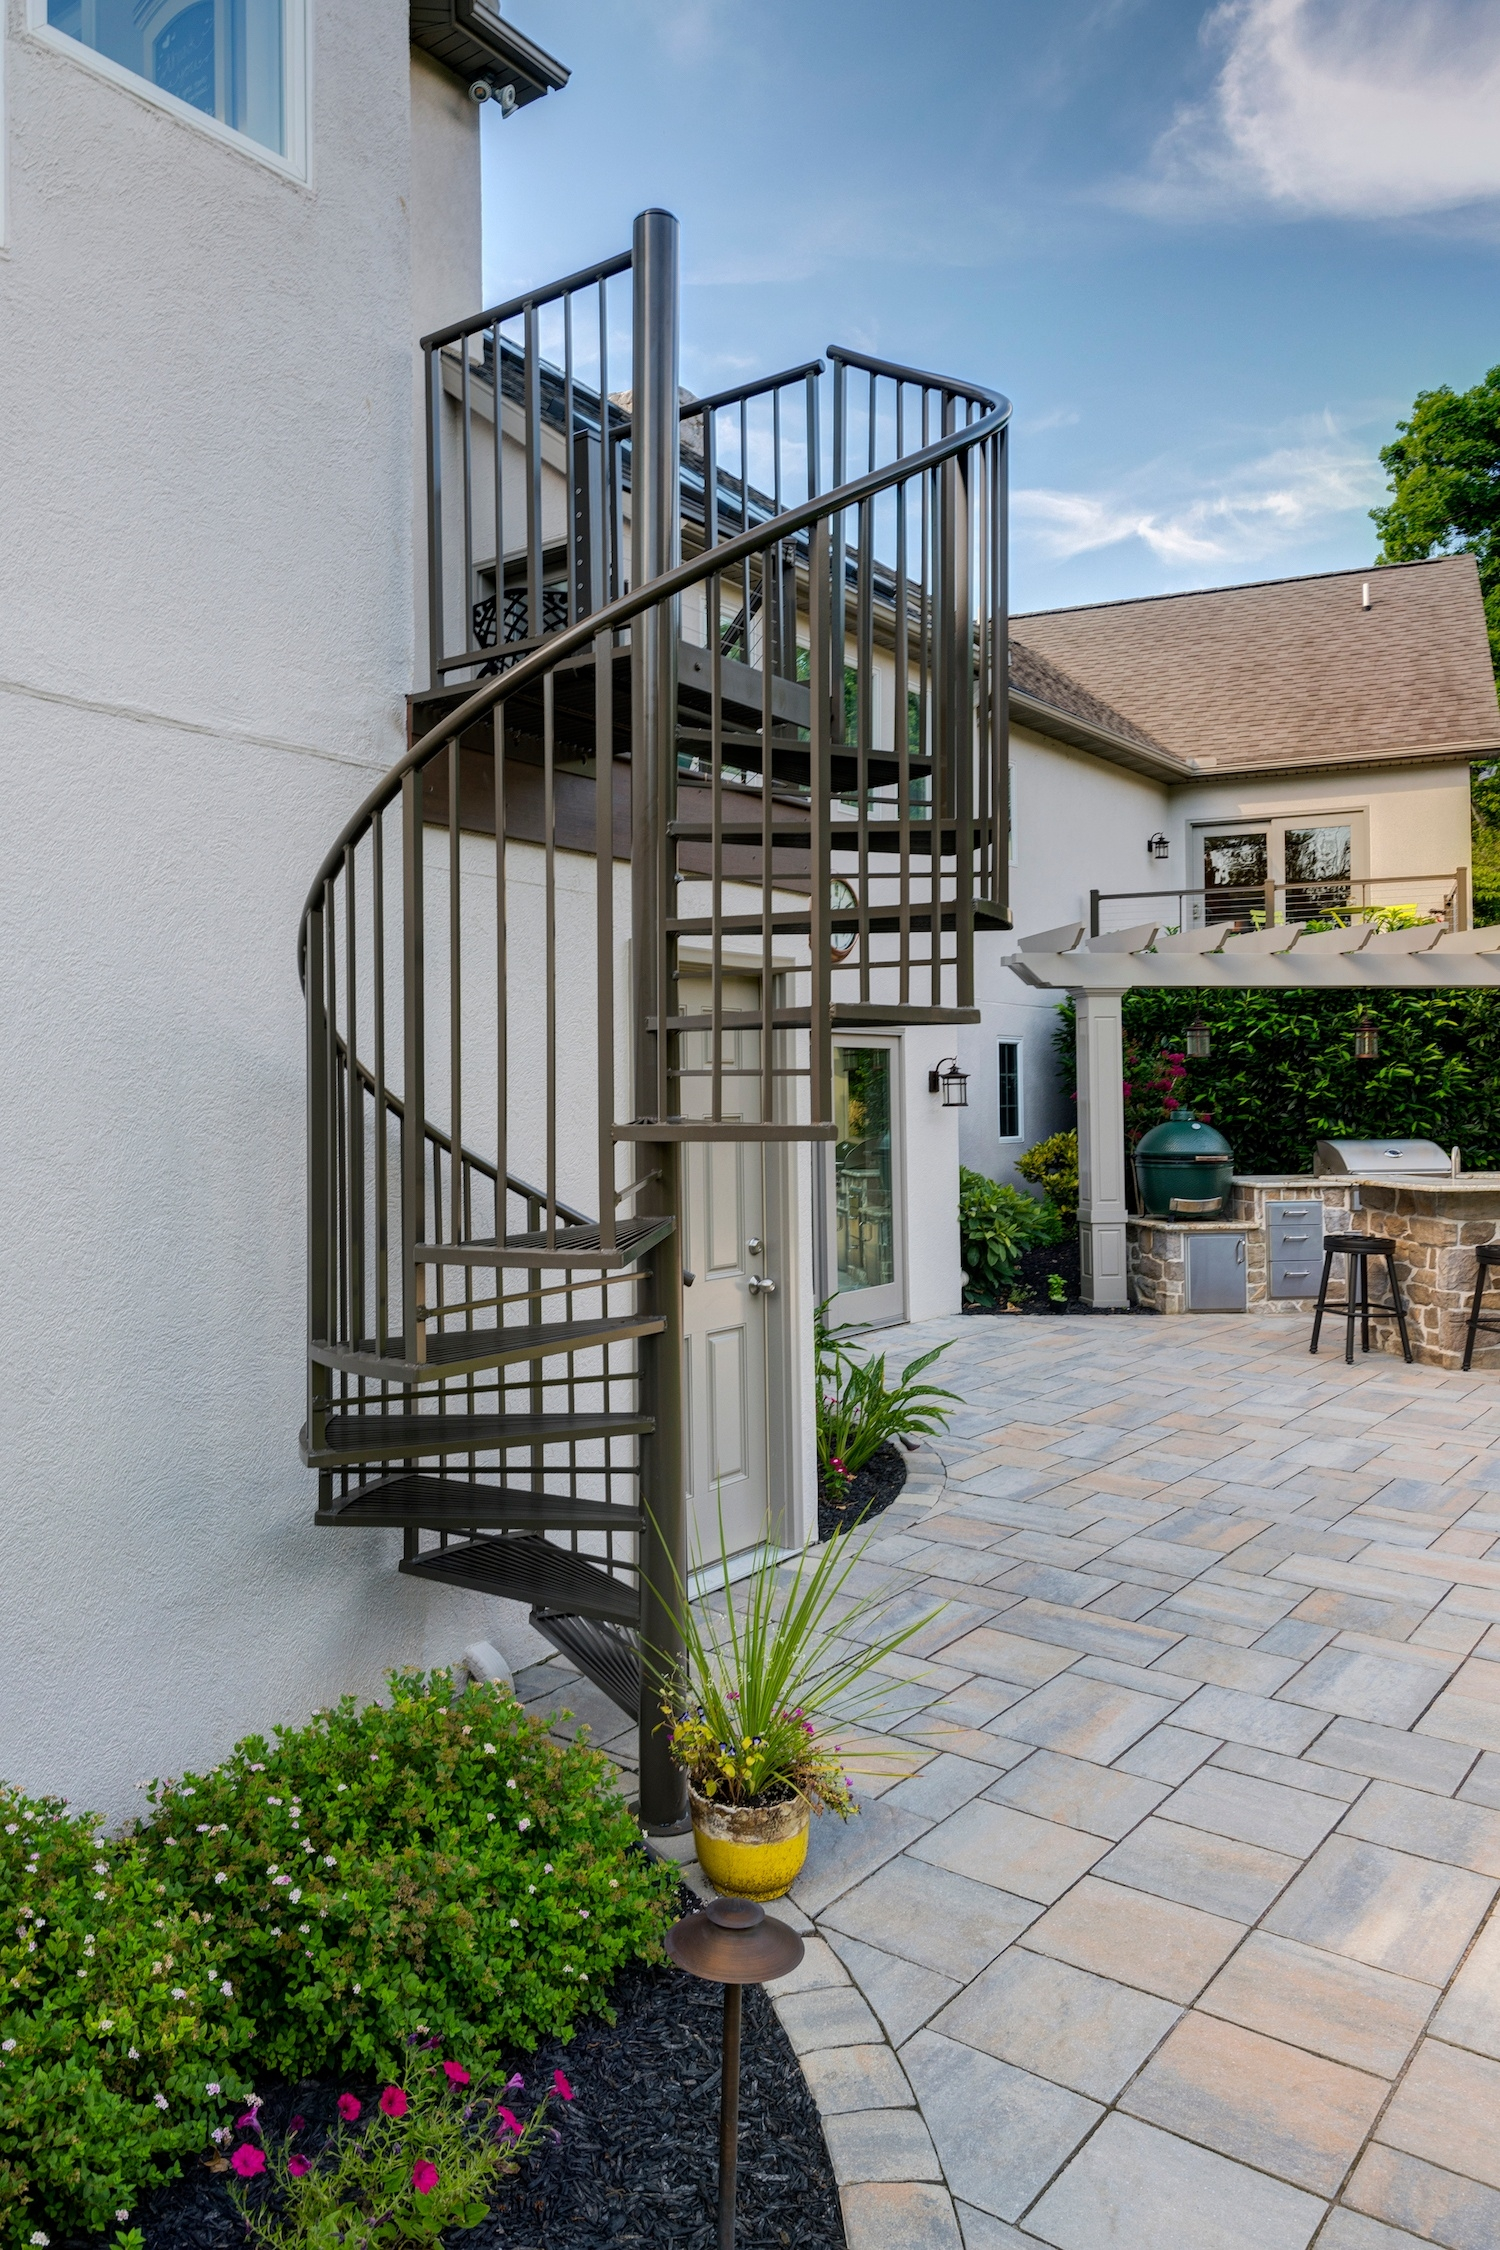 Adding A Patio Under Your Deck Tips And Ideas For Homeowners In   Spiral Stairs Off Deck   Railing   Wood Deck   Metal   Stair Case   Stairway